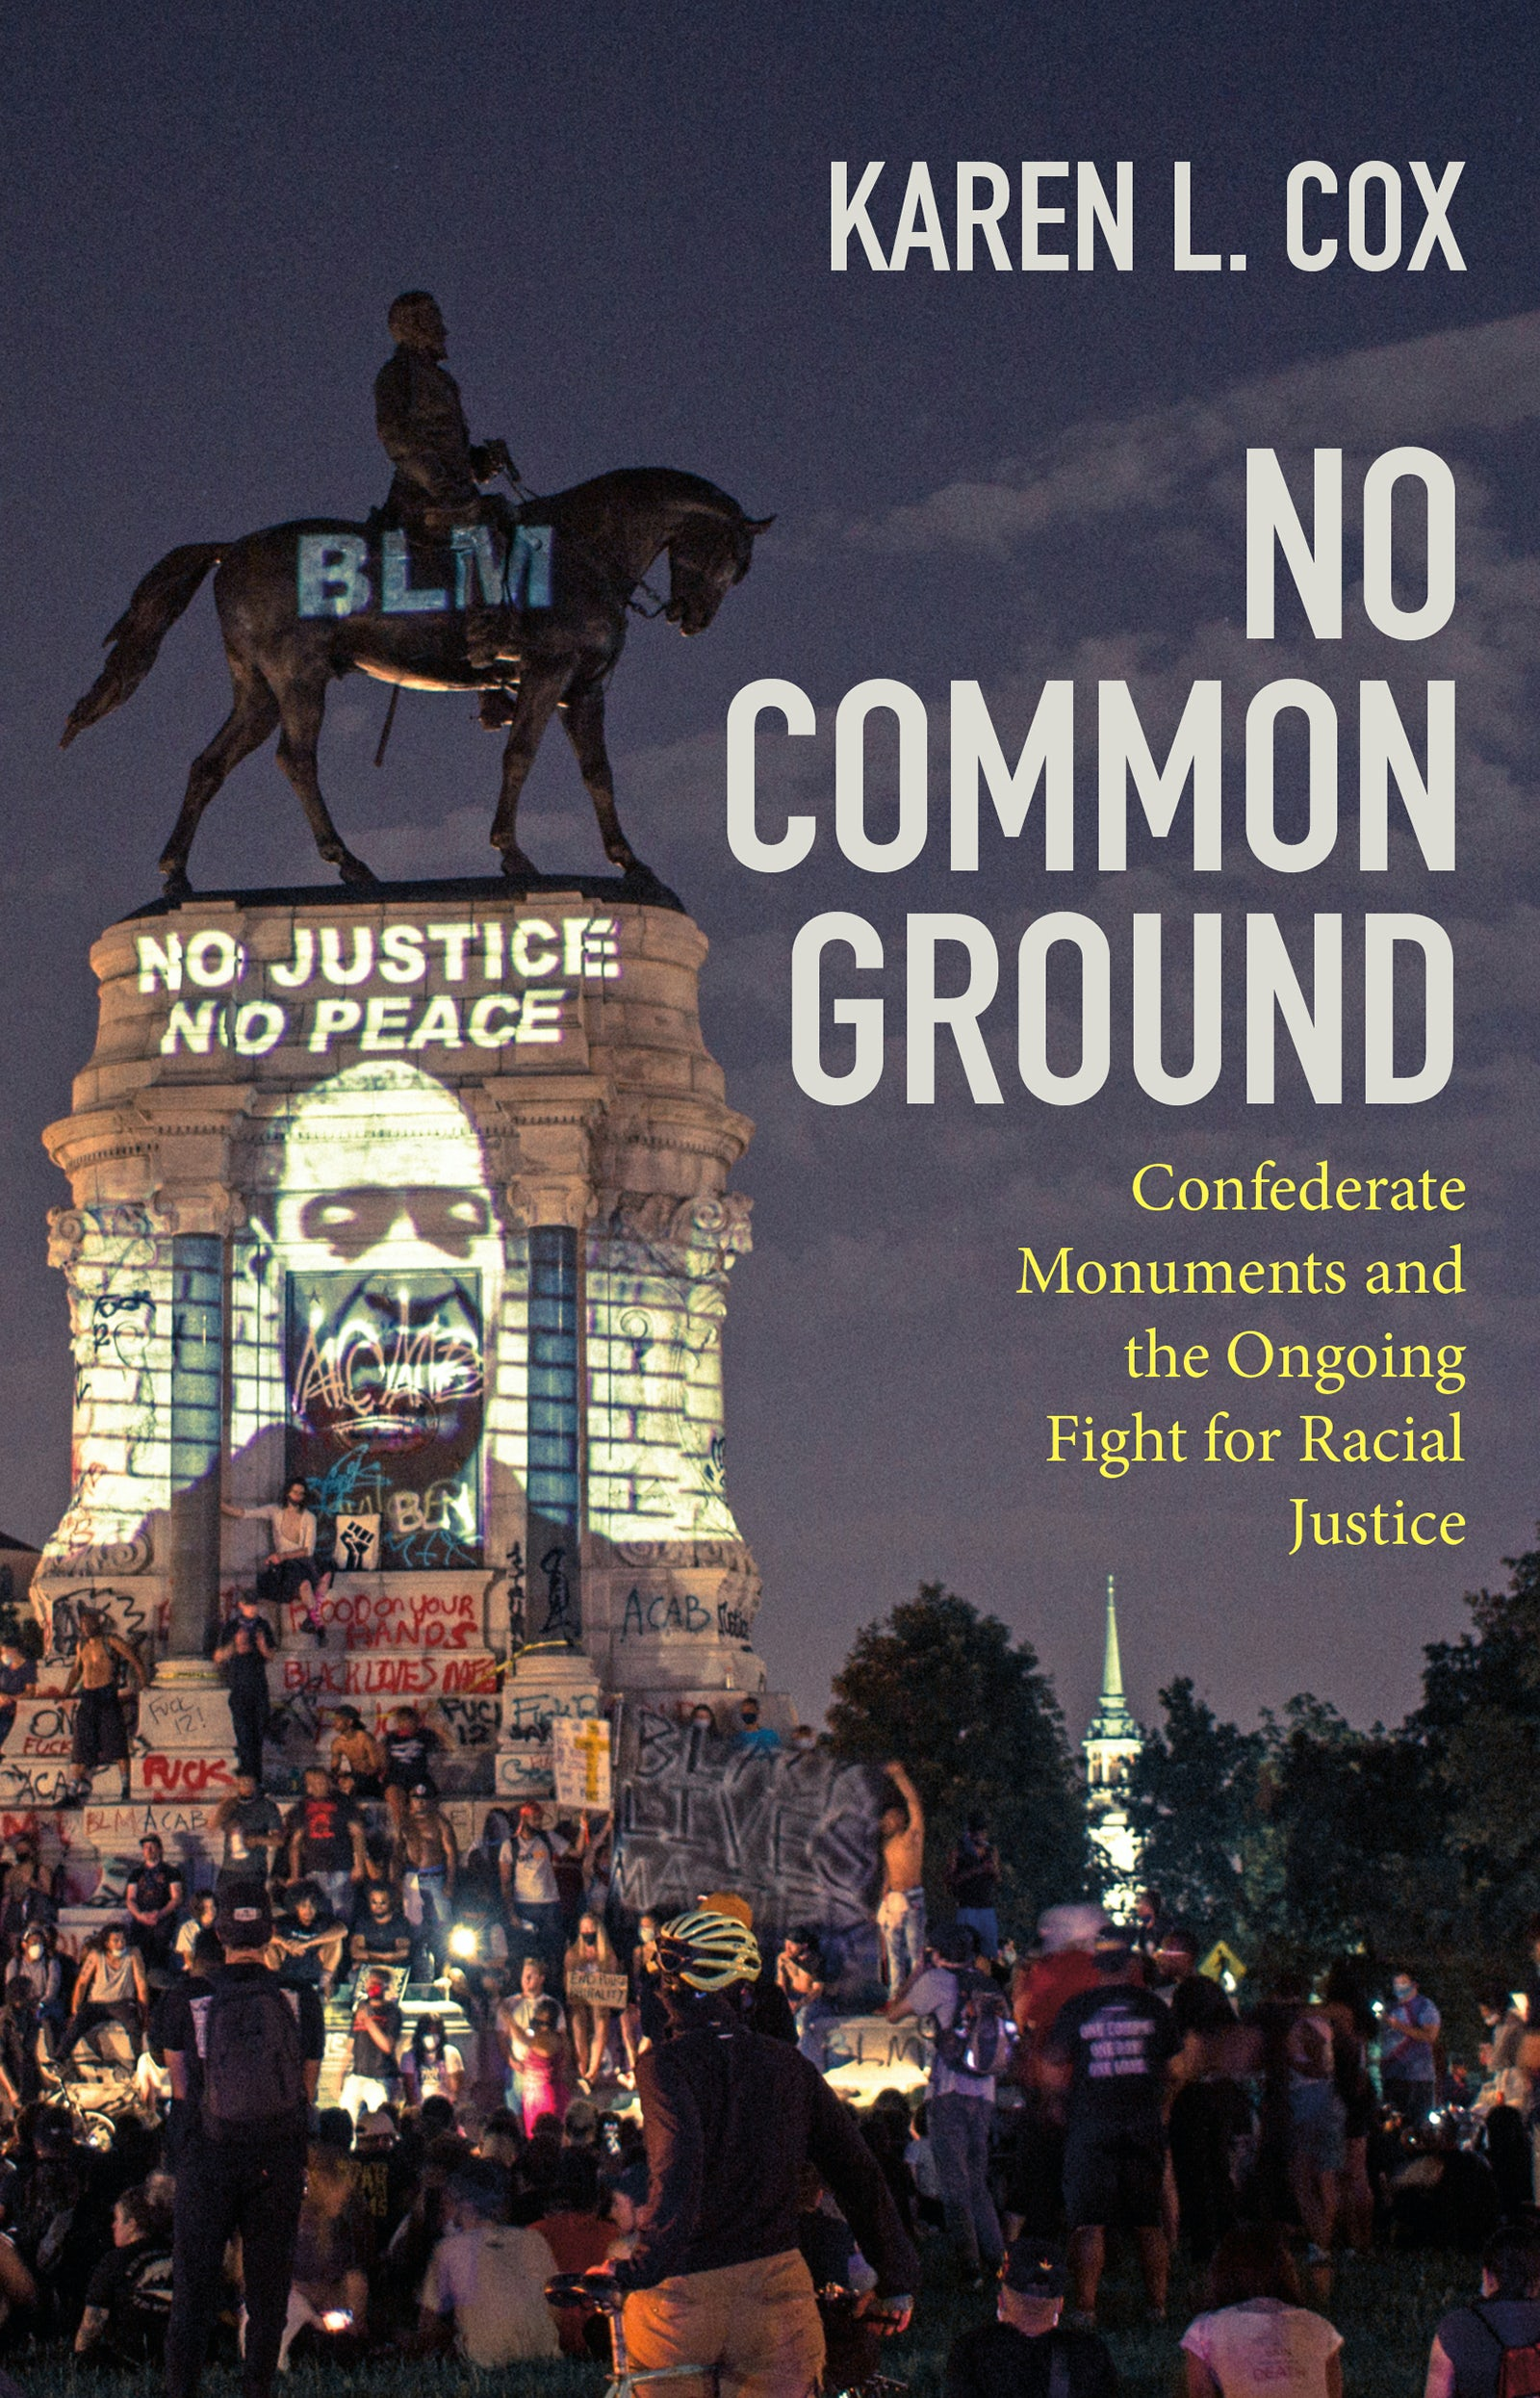 Confederate Monuments and the Ongoing Fight for Racial Justice